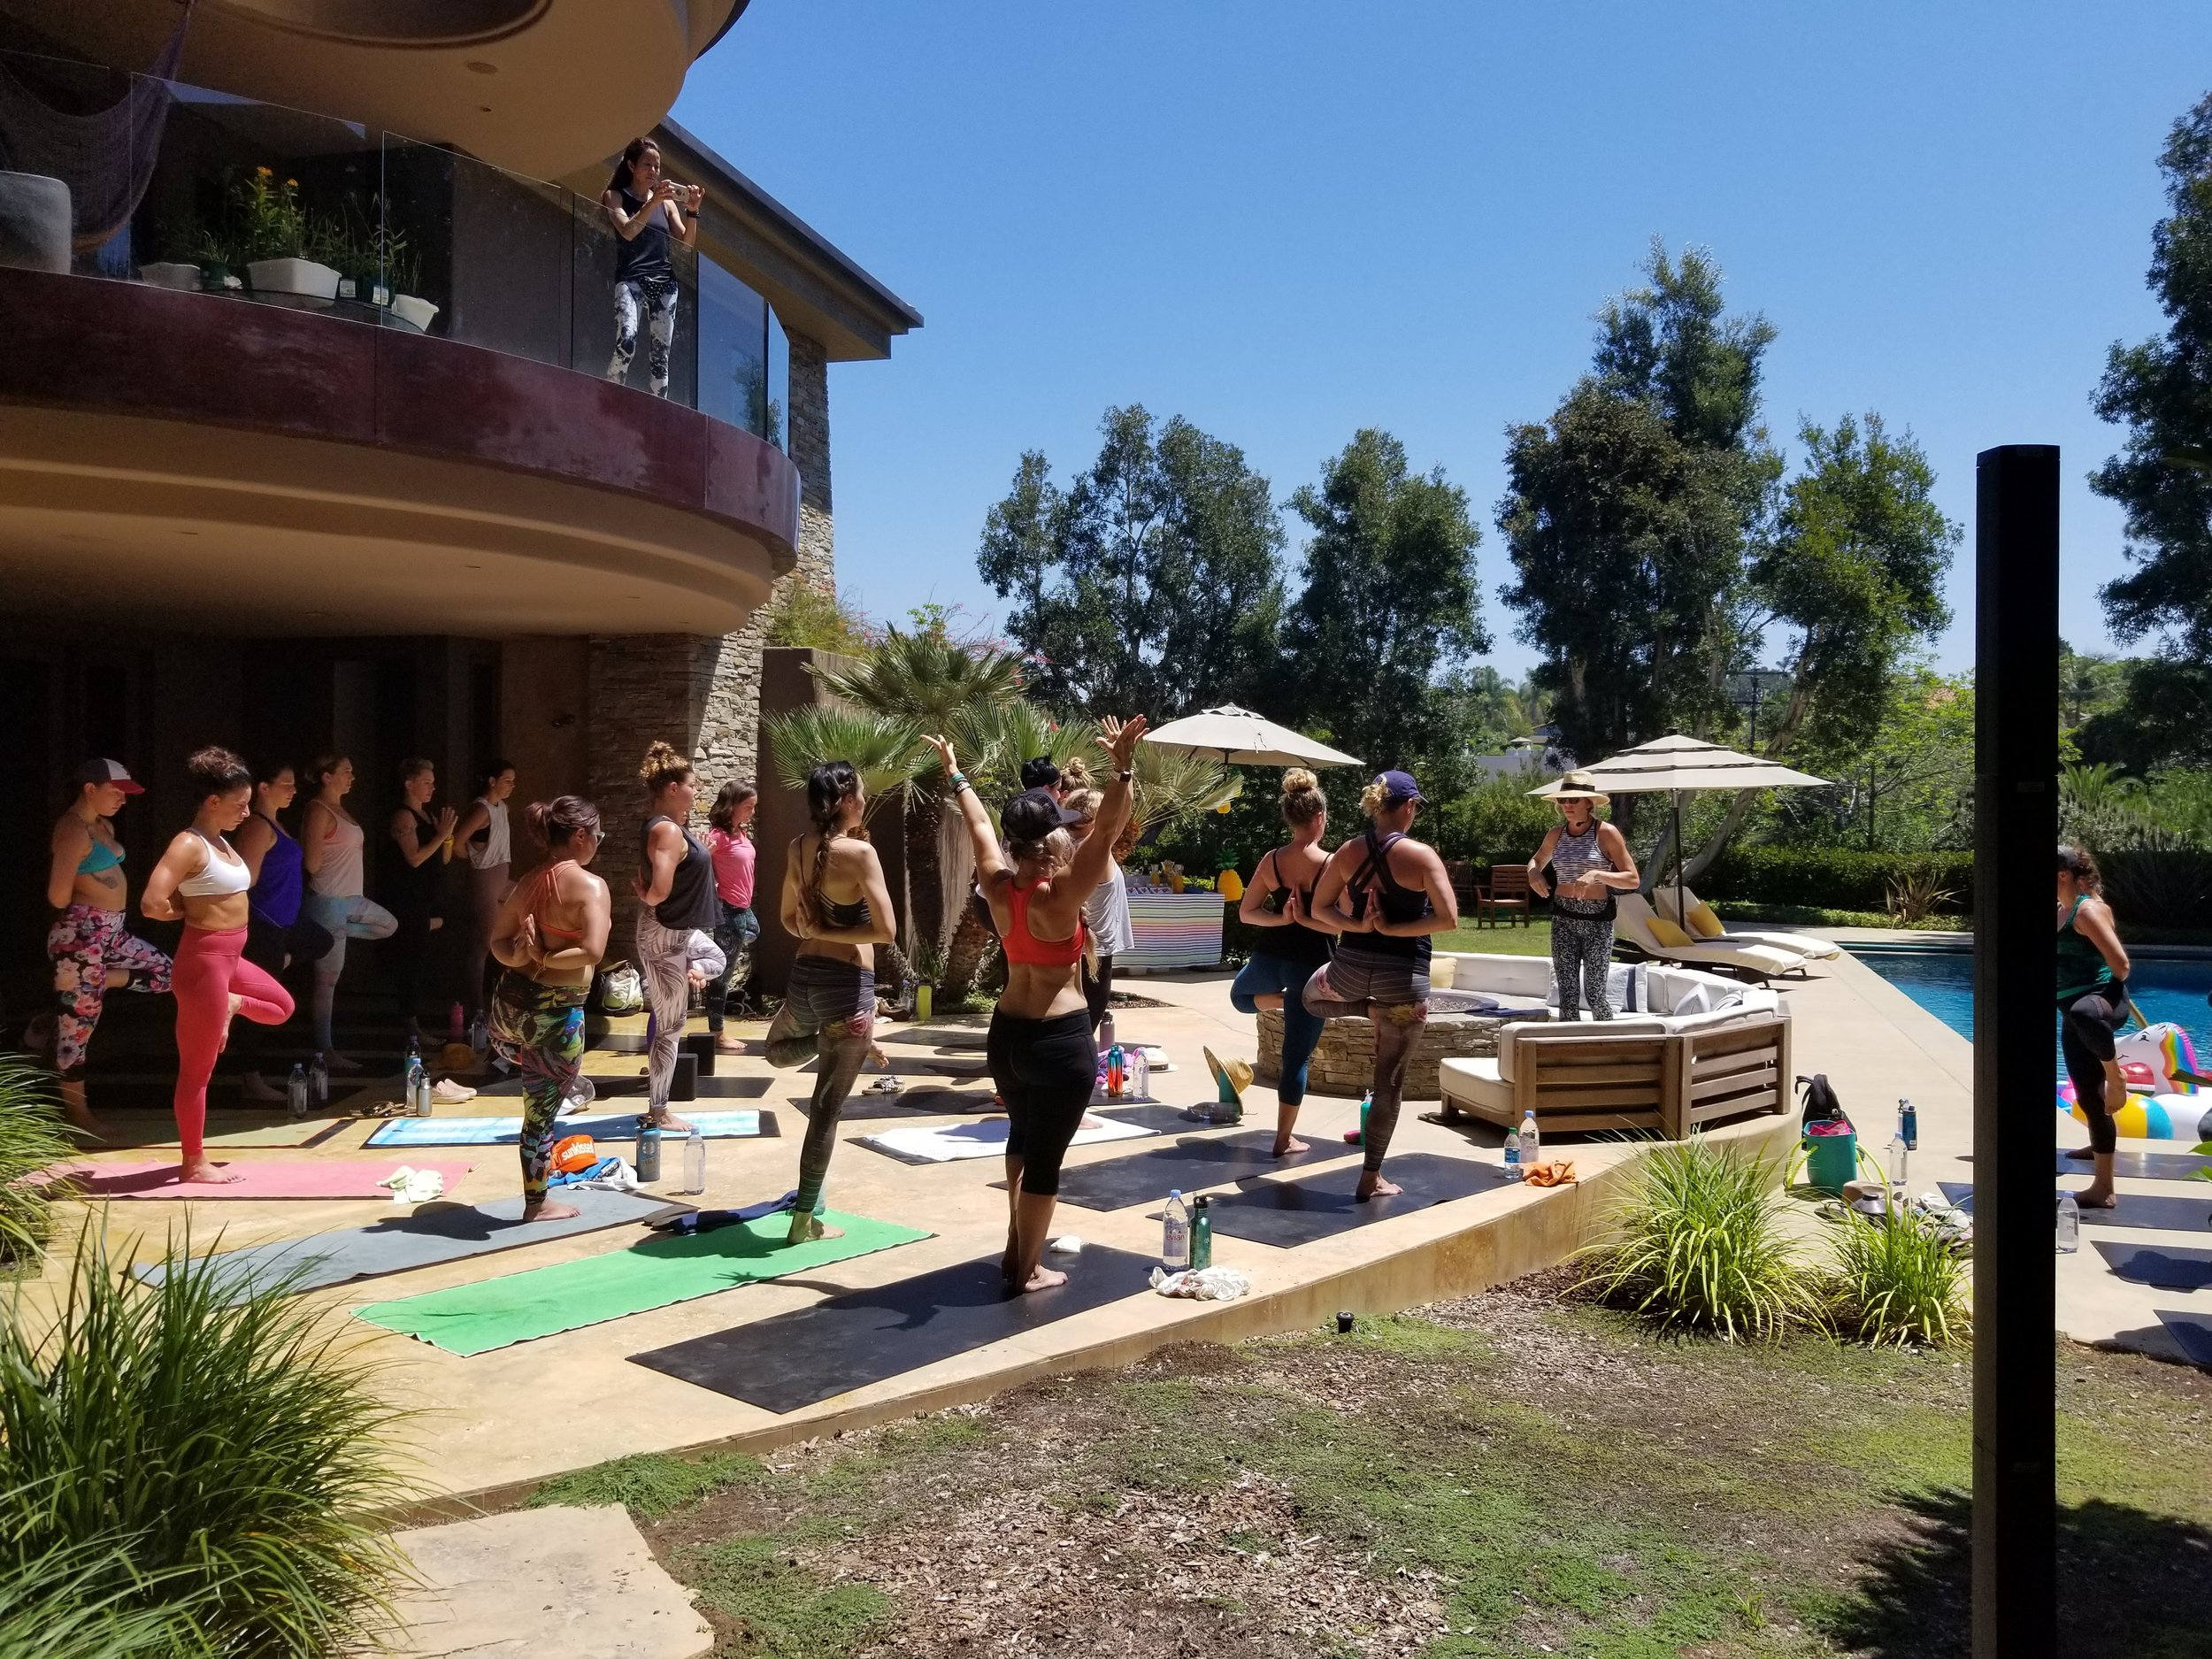 Goldie Graham teaches yoga at the Starlight La Jolla during her Retreat Without The Travel event.